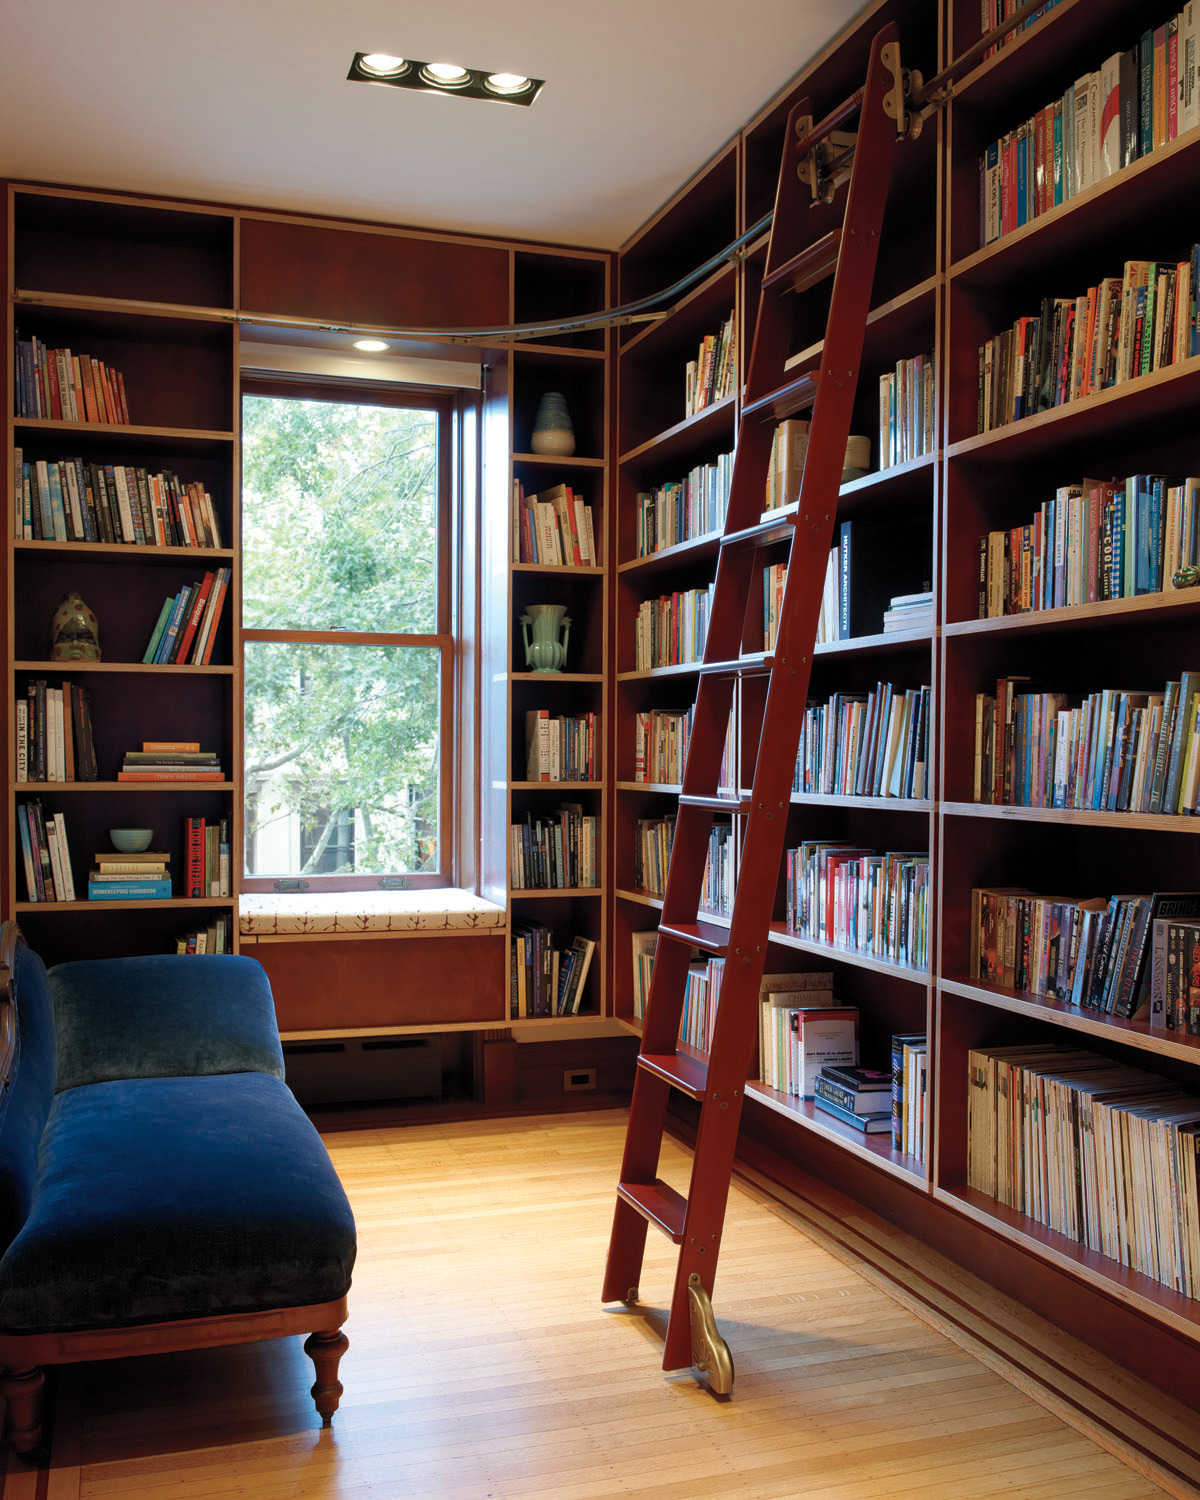 Brooklyn architects carefully restored park slope townhouse with a library of built-in book shelves and rolling ladder